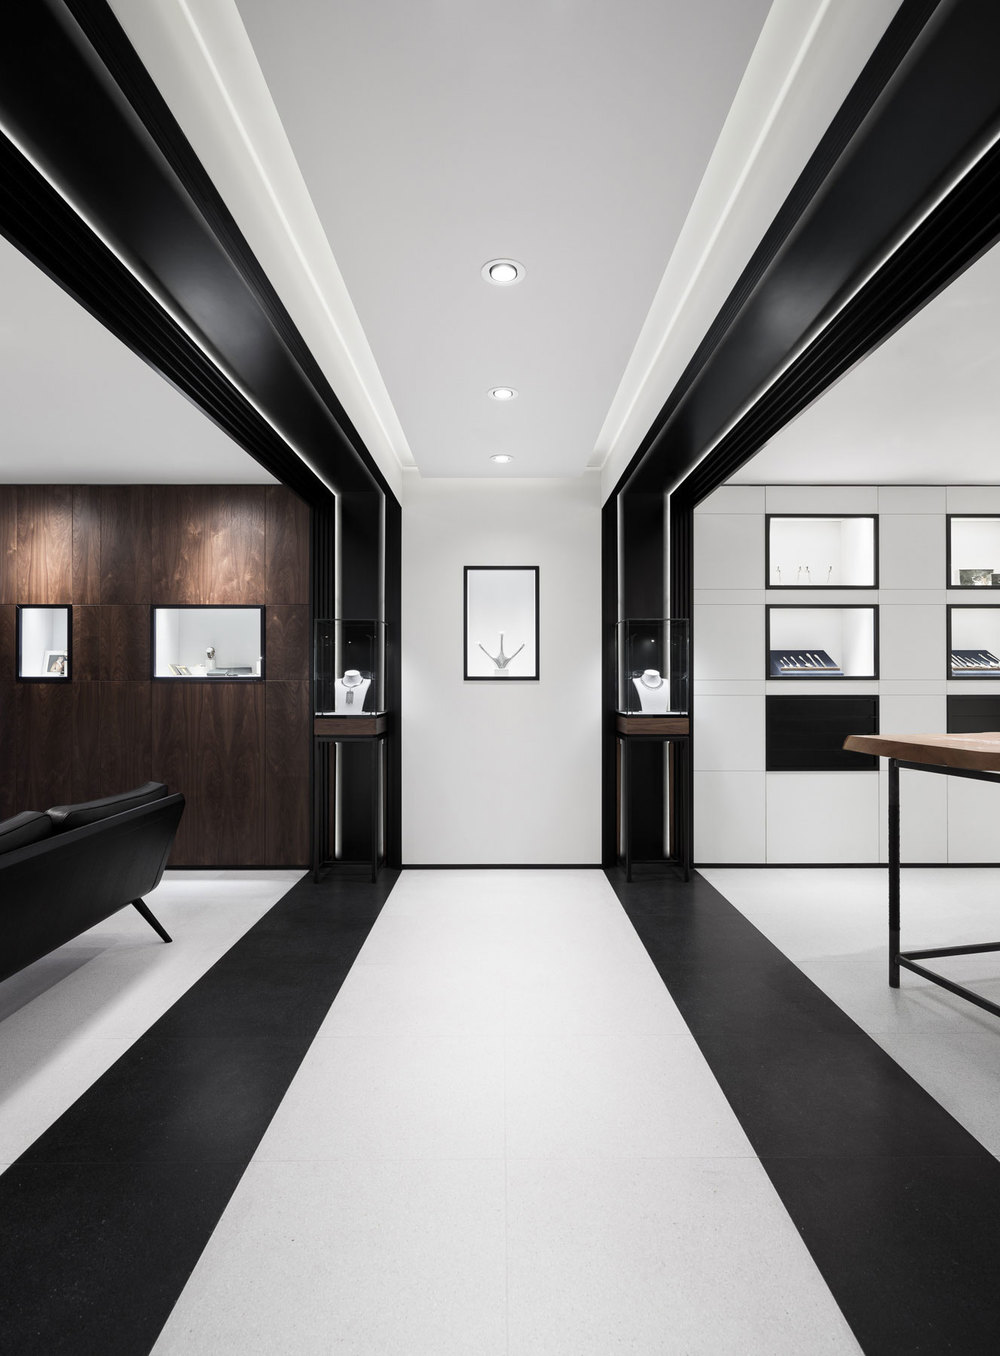 David thulstrup designs symmetrical space for georg jensen for Interior designers in